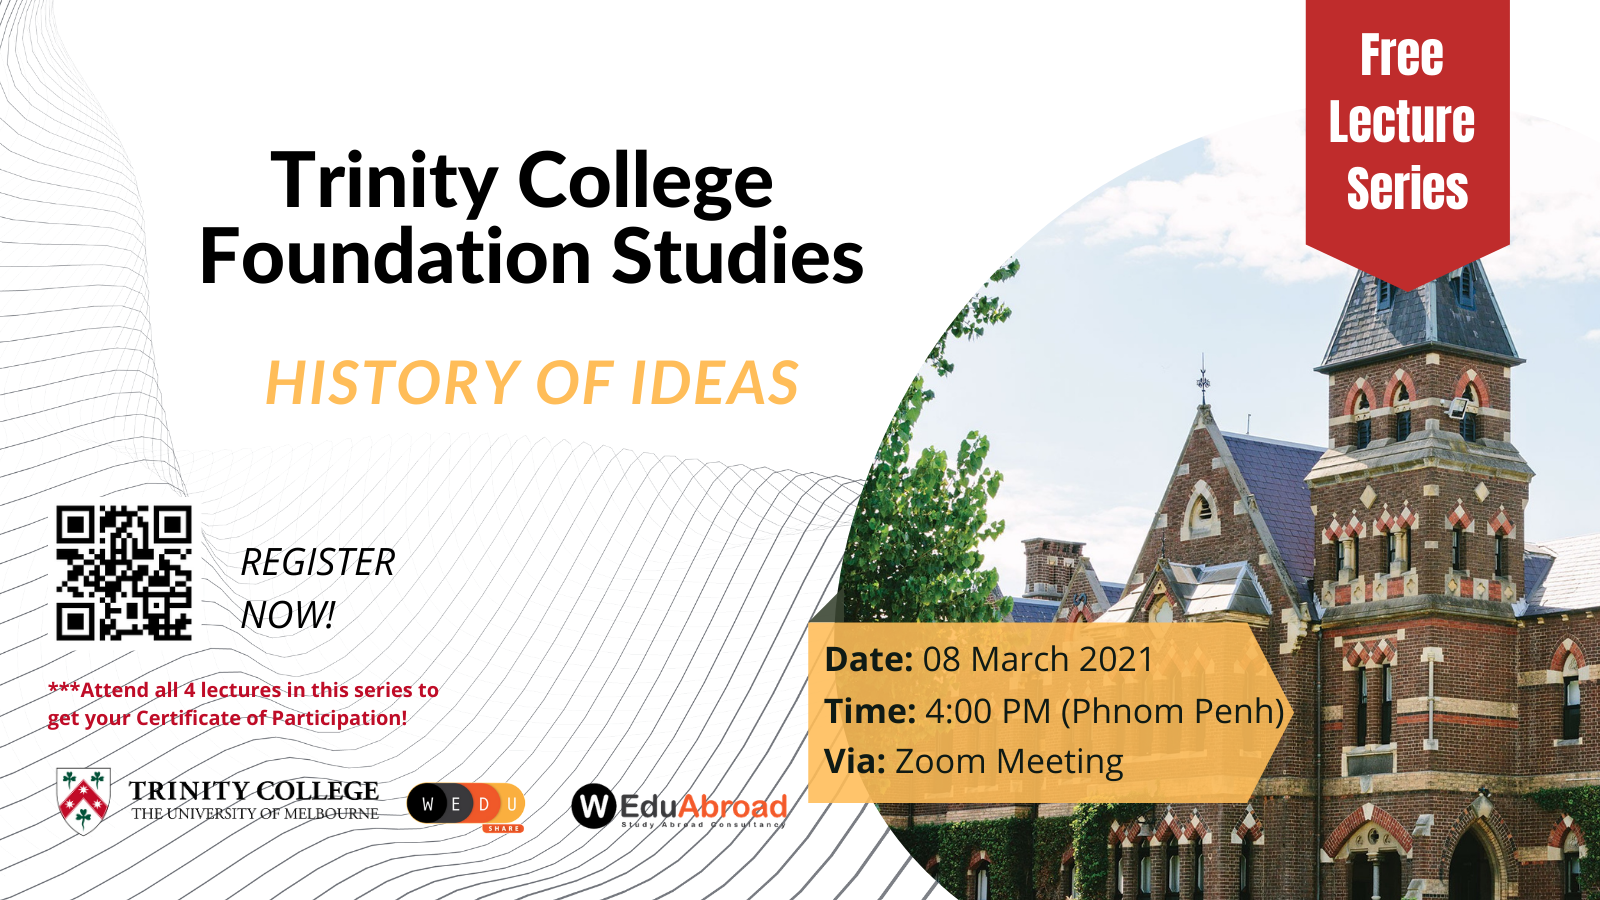 Trinity College Foundation Studies FREE Lecture Series History of Ideas